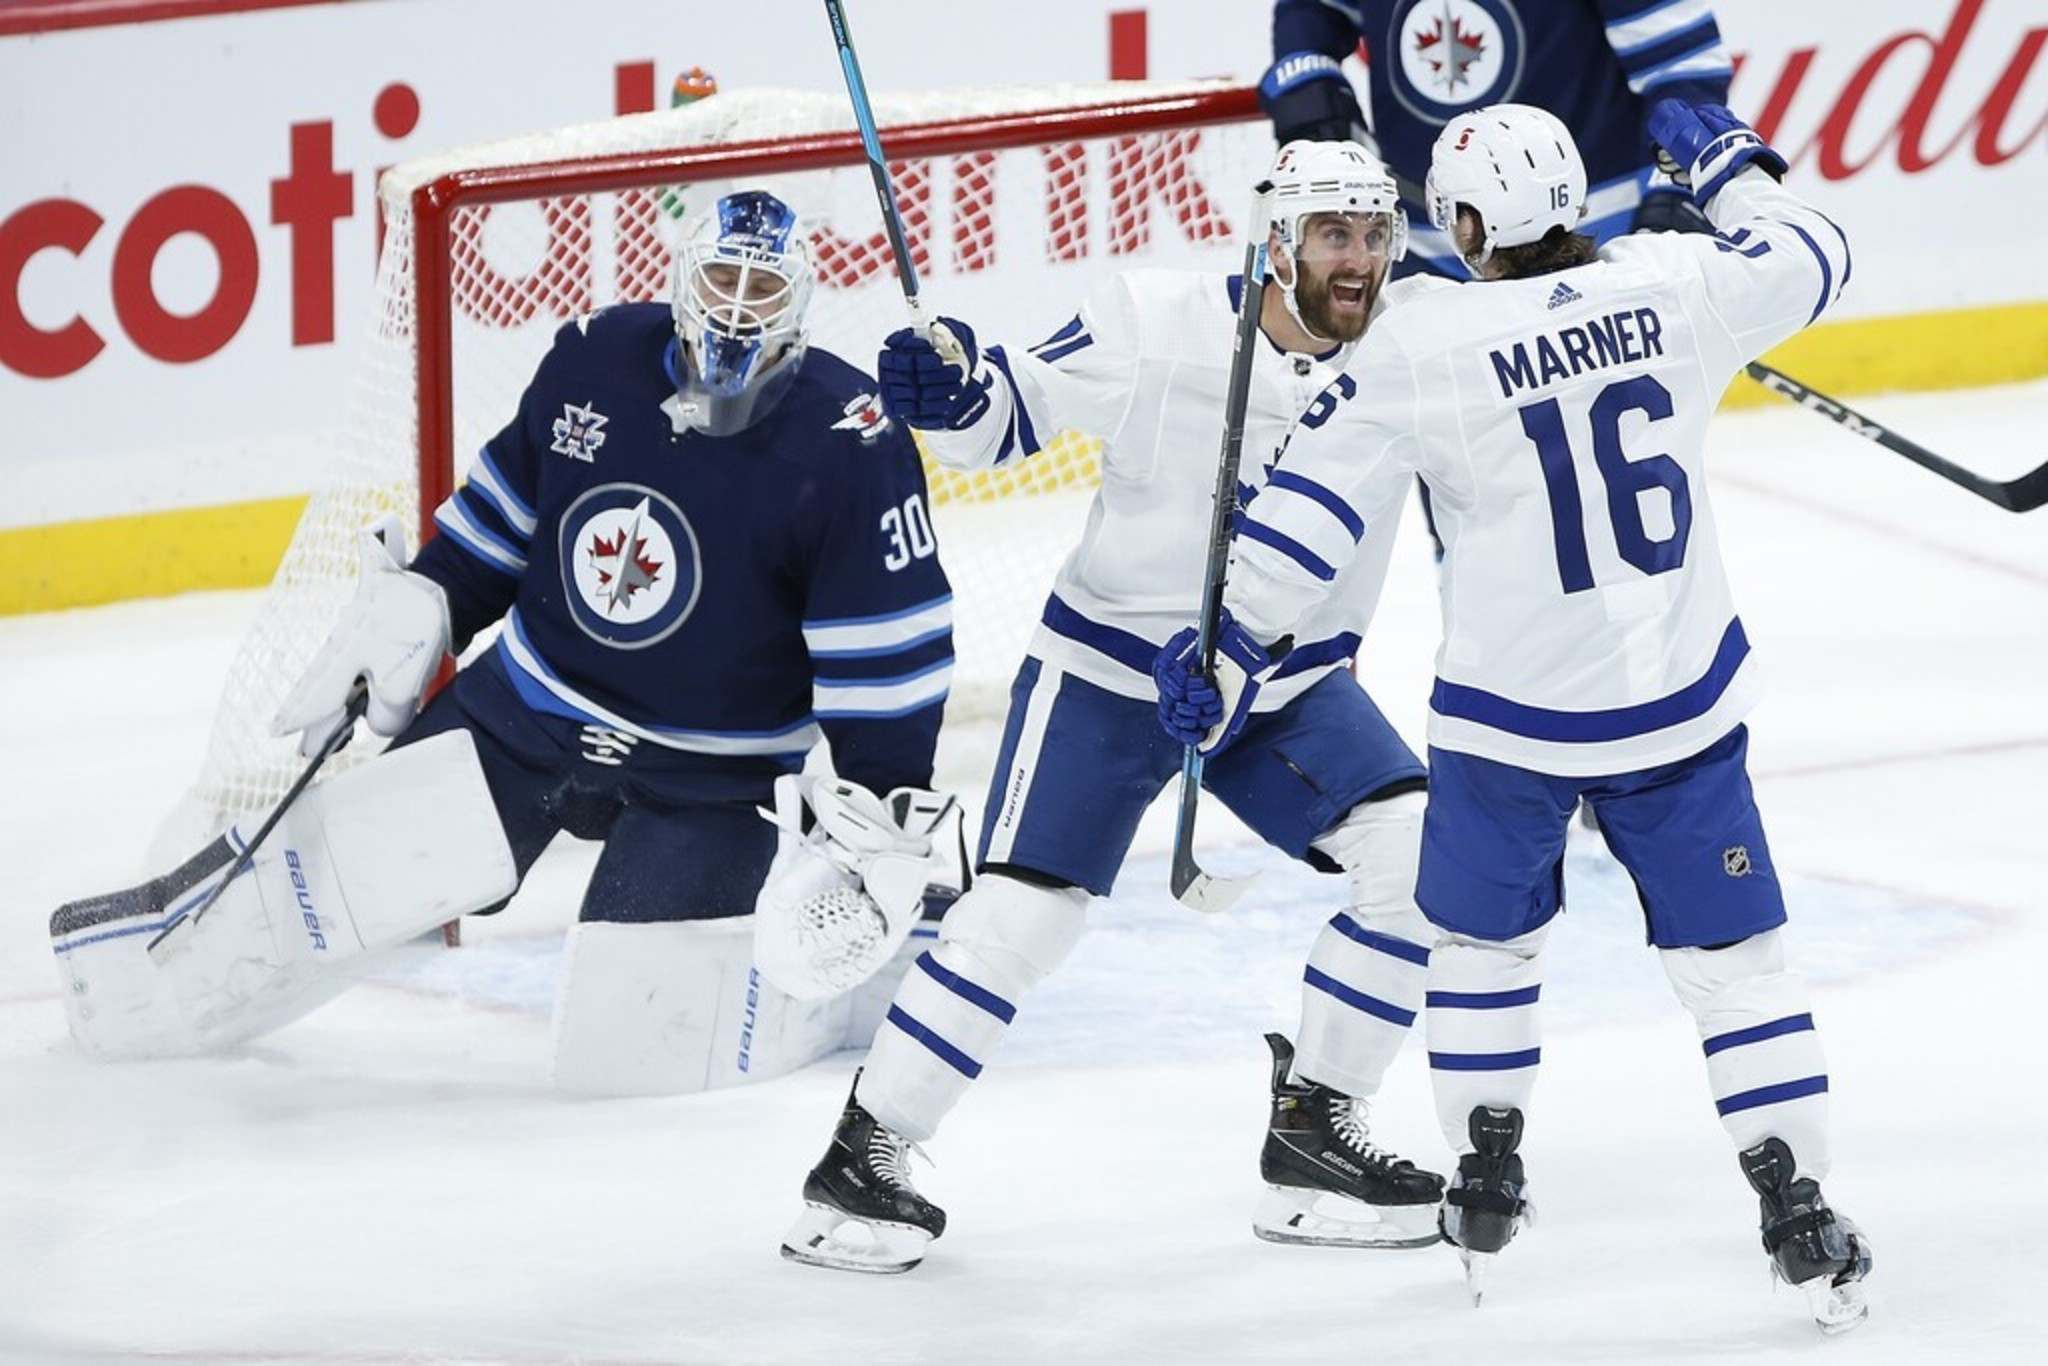 Toronto Maple Leafs' Nick Foligno, left, and Mitch Marner celebrate Marner's goal on Winnipeg Jets goaltender Laurent Brossoit during the second period in Winnipeg on Thursday. THE CANADIAN PRESS/John Woods</p>